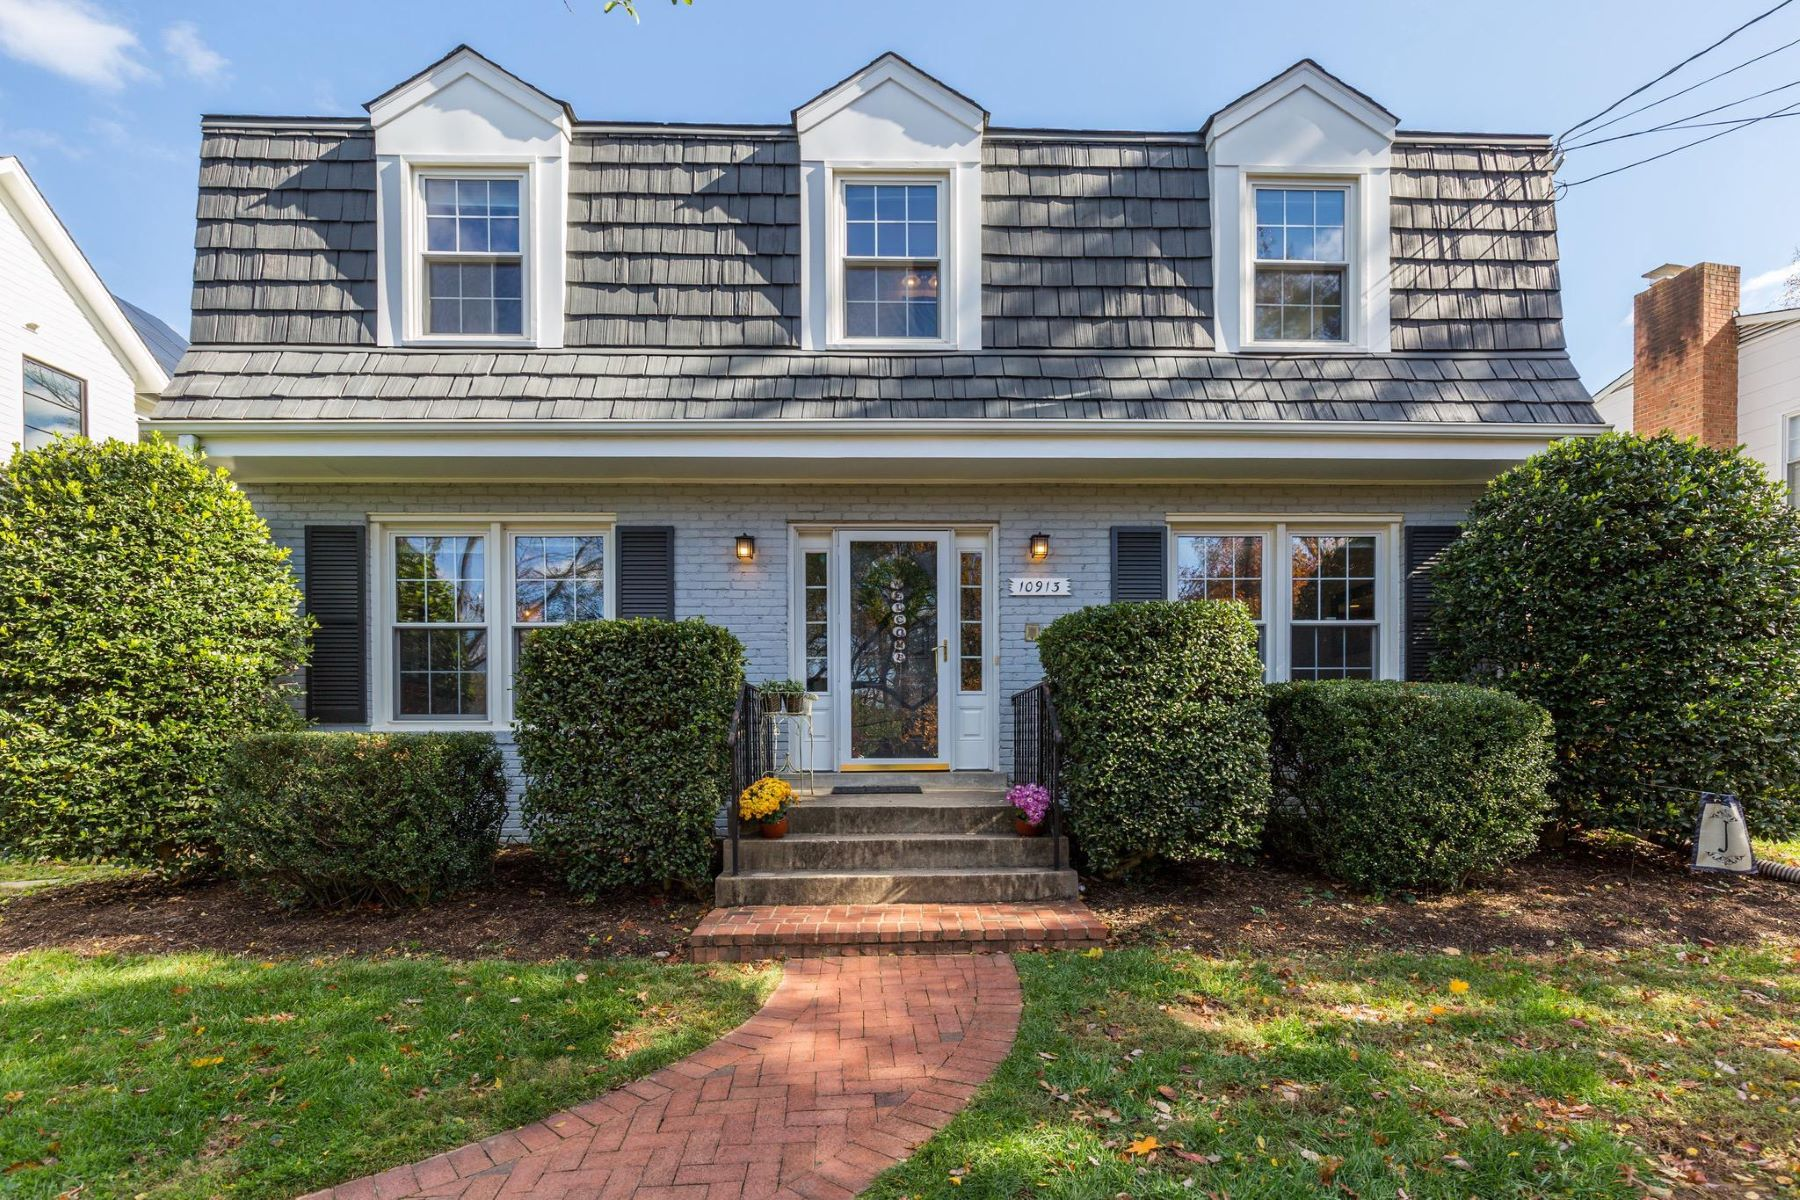 Single Family Homes for Sale at 10913 Kenilworth Ave Garrett Park, Maryland 20896 United States